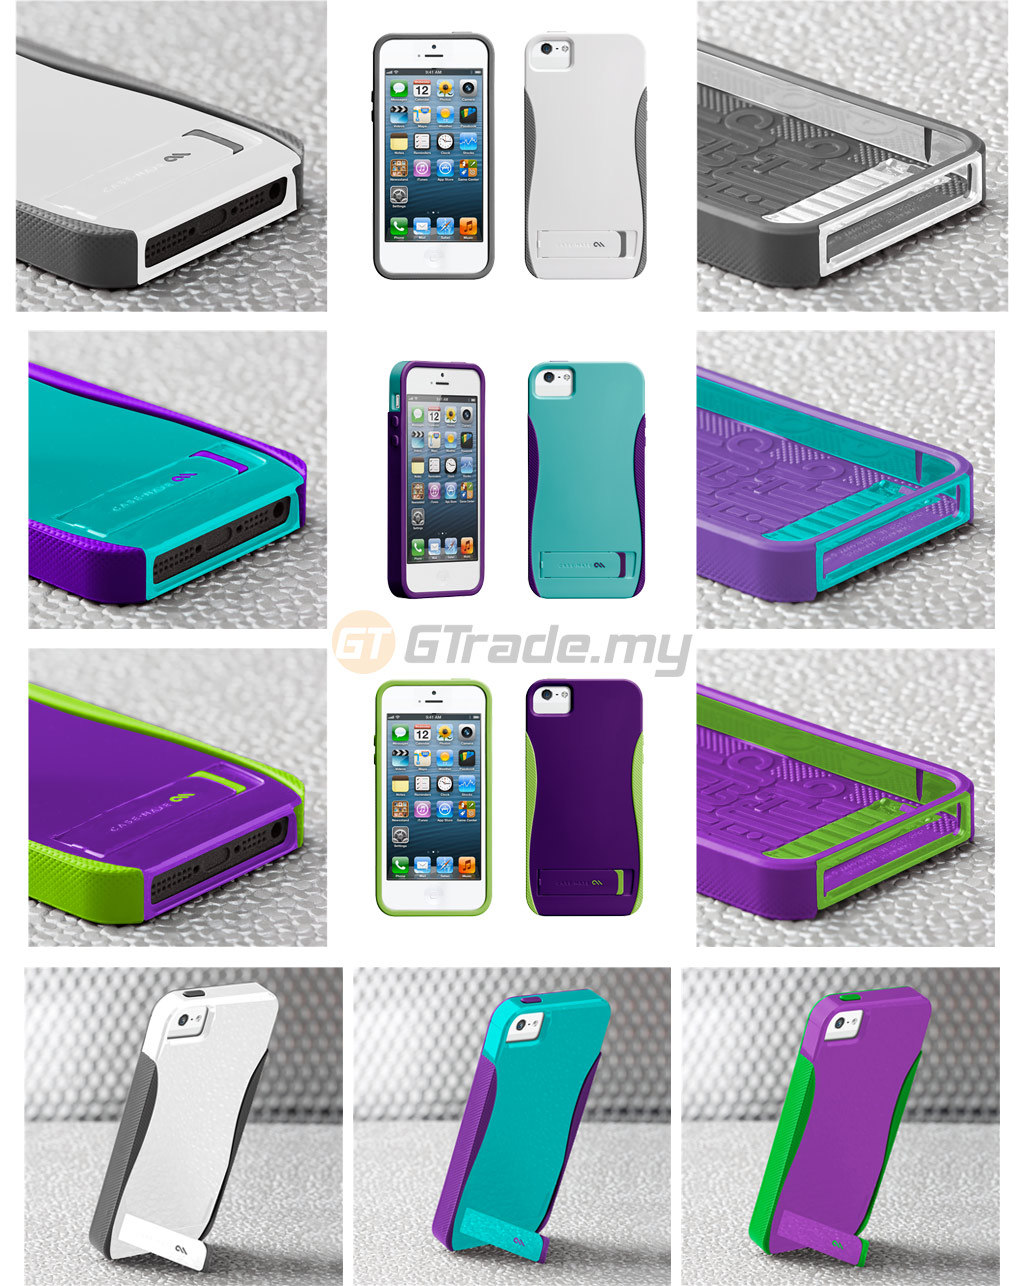 case-mate-tough-bumper-case-apple-iphone-5s-5